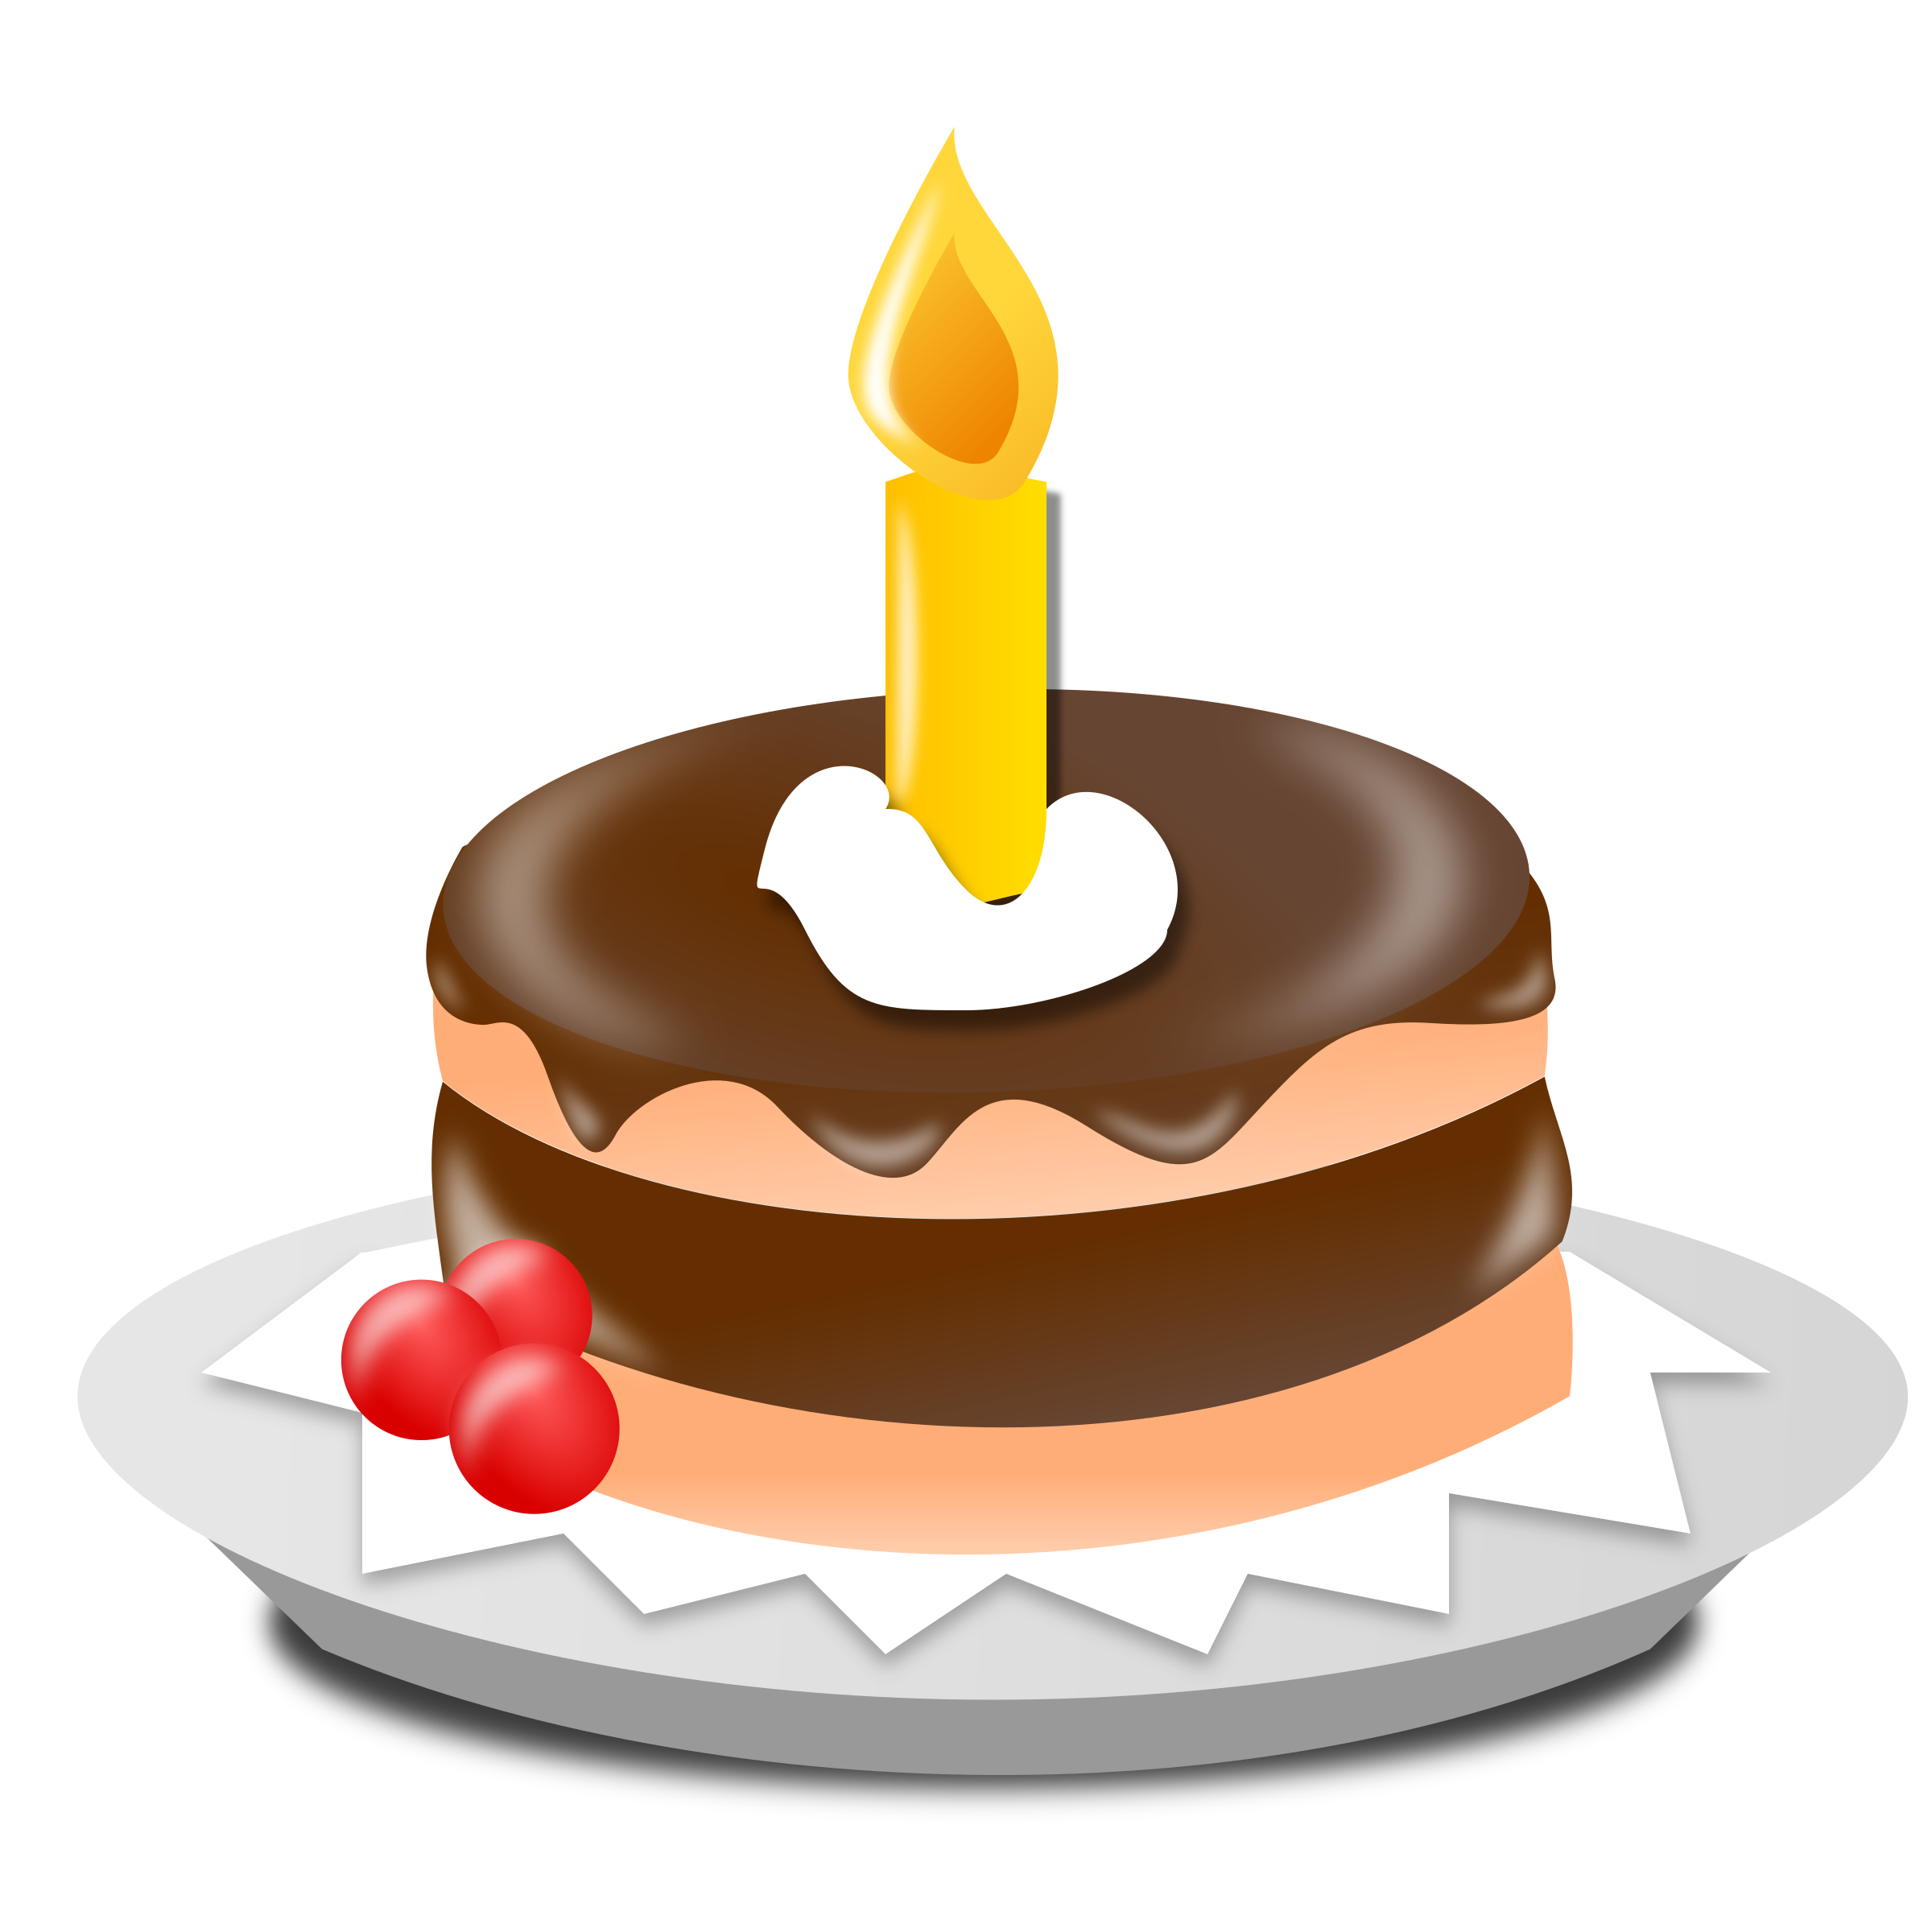 Big image png. Clipart birthday icon